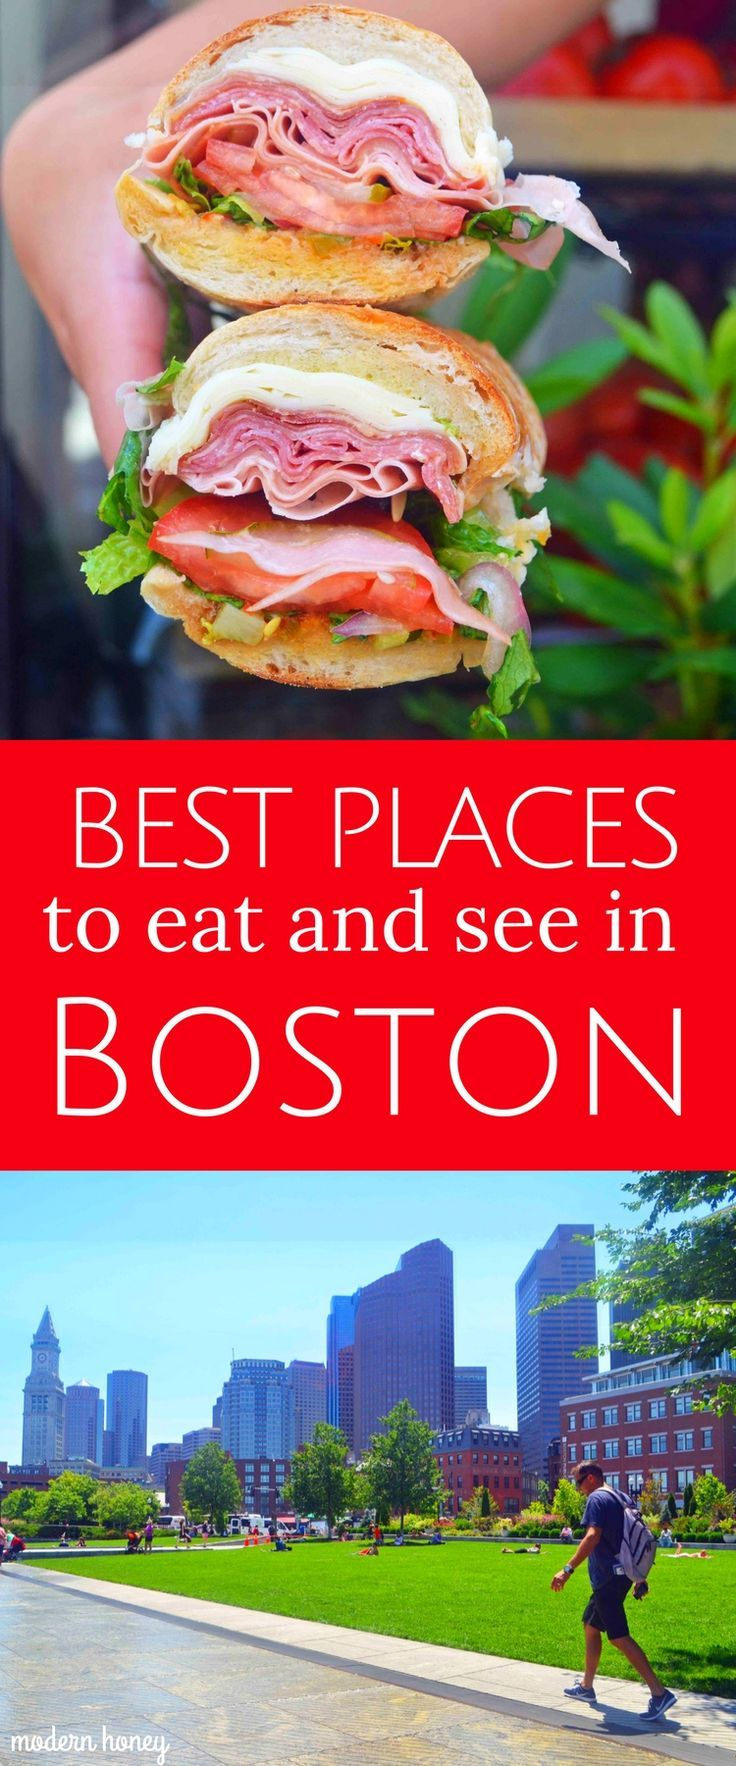 Best places to eat and see in boston a comprehensive list